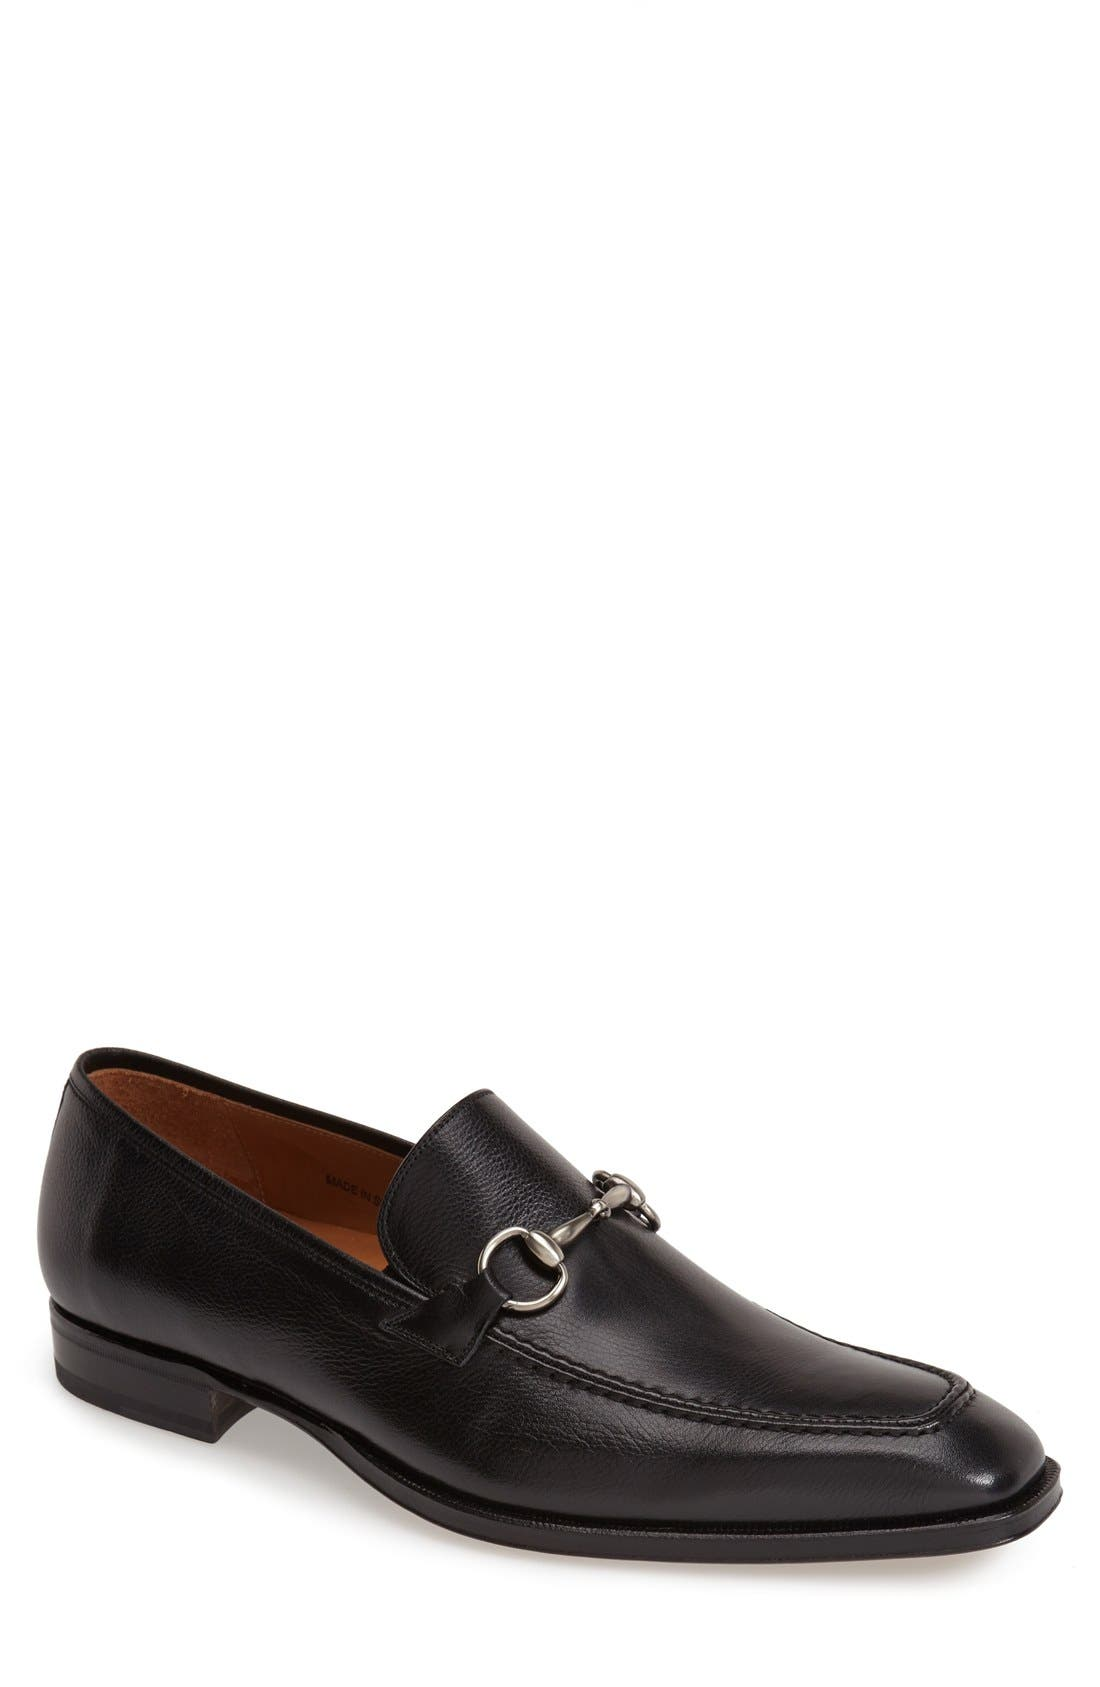 'Tours' Leather Bit Loafer,                             Main thumbnail 1, color,                             BLACK